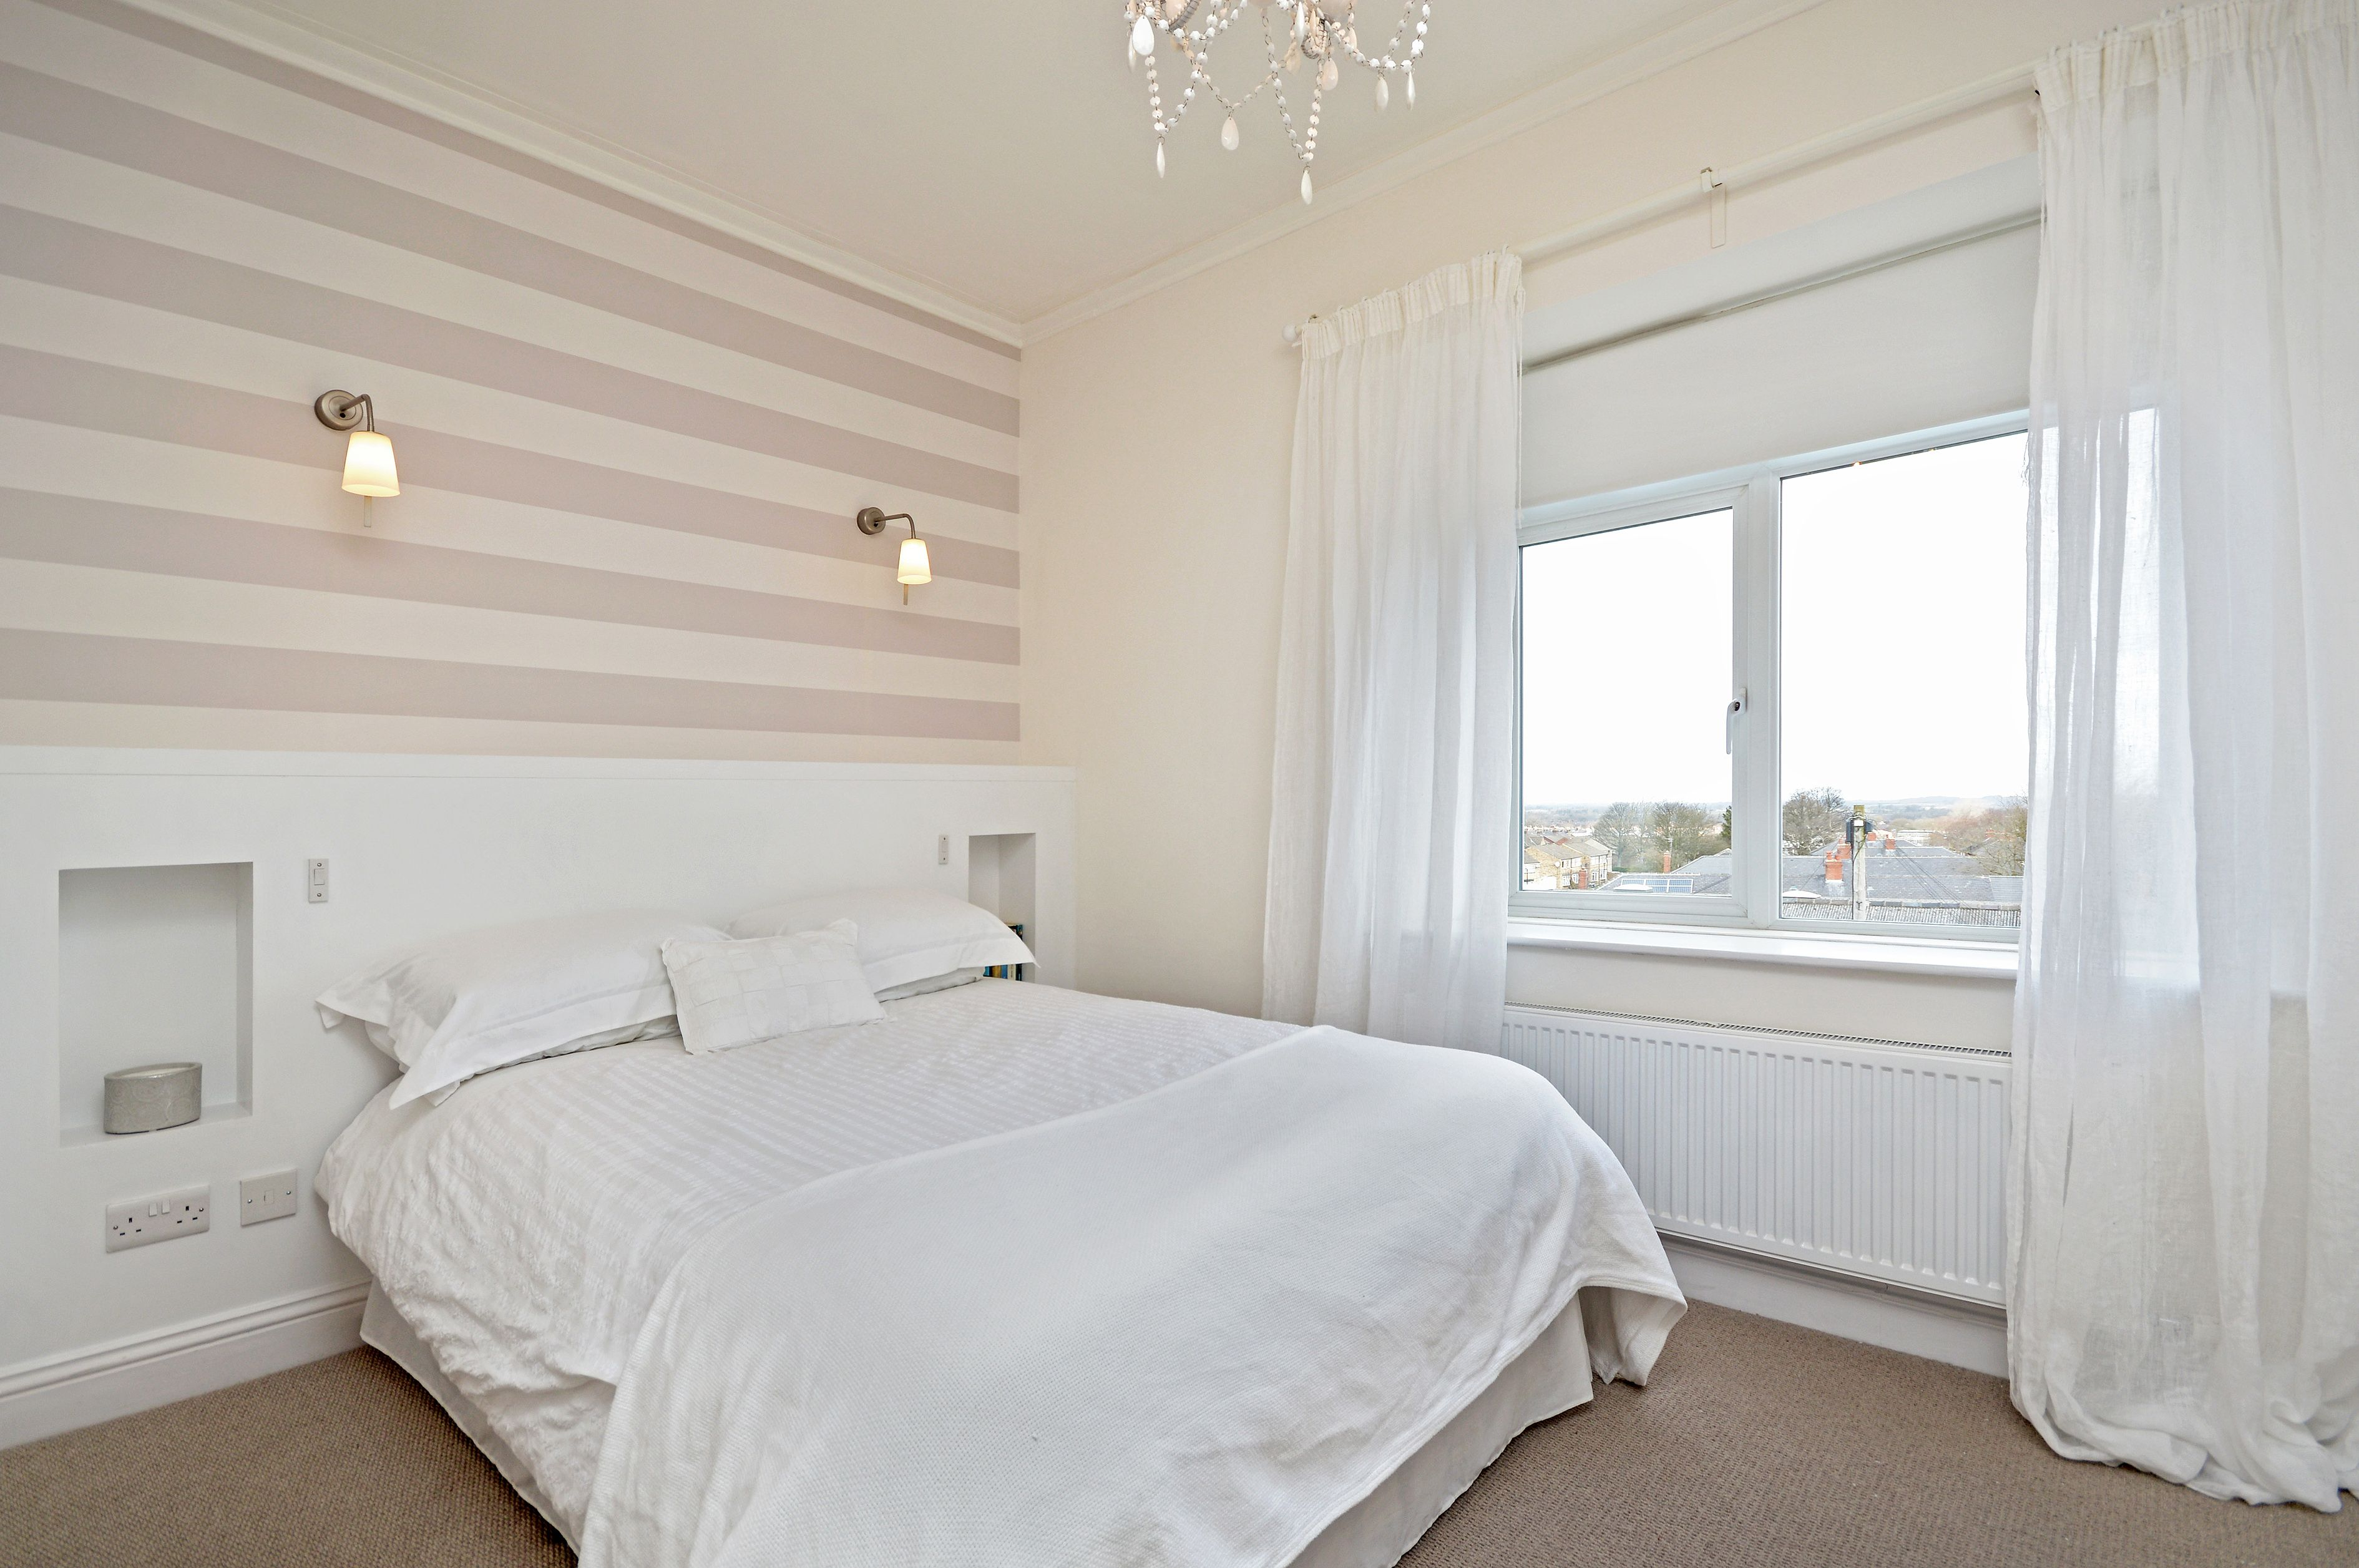 Bedroom With Grey And White Striped Wallpaper And Linen Curtains